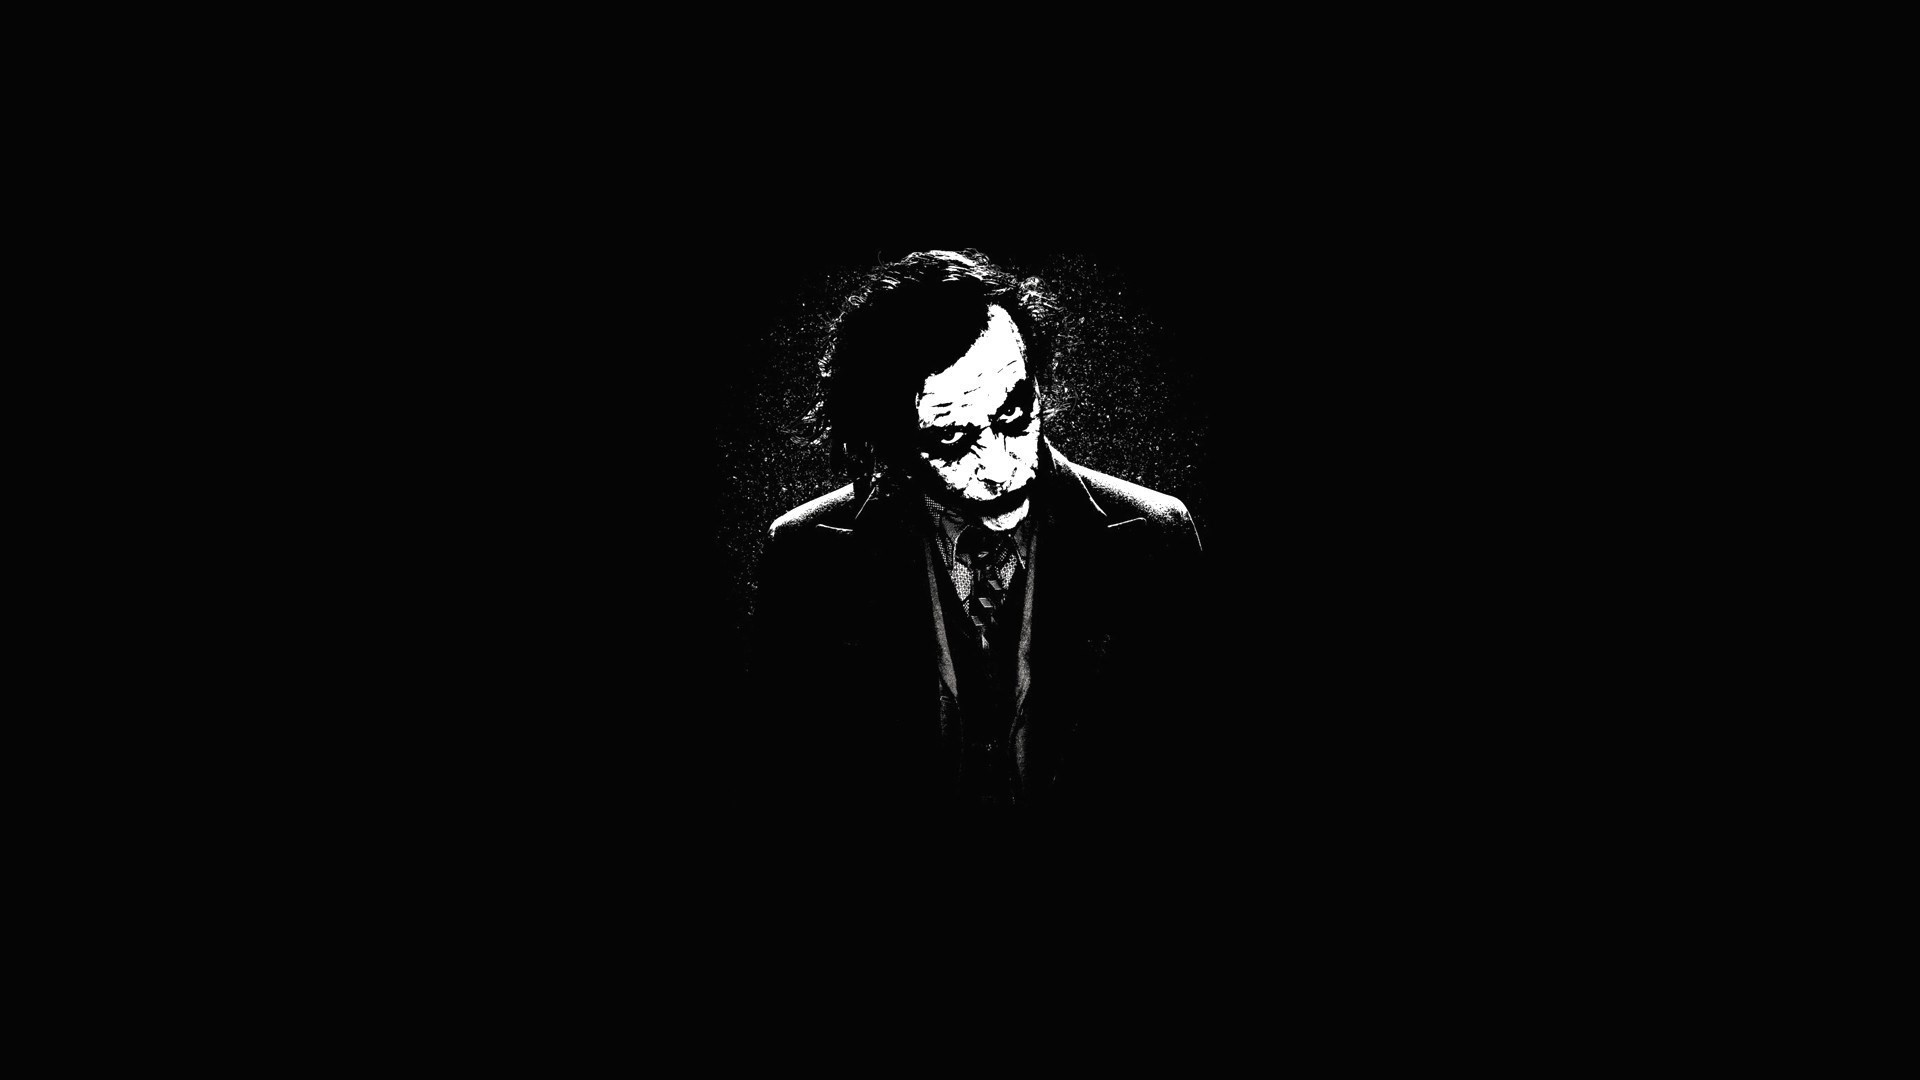 The Joker Wallpapers Hd Wallpaper Collections 4kwallpaper Wiki